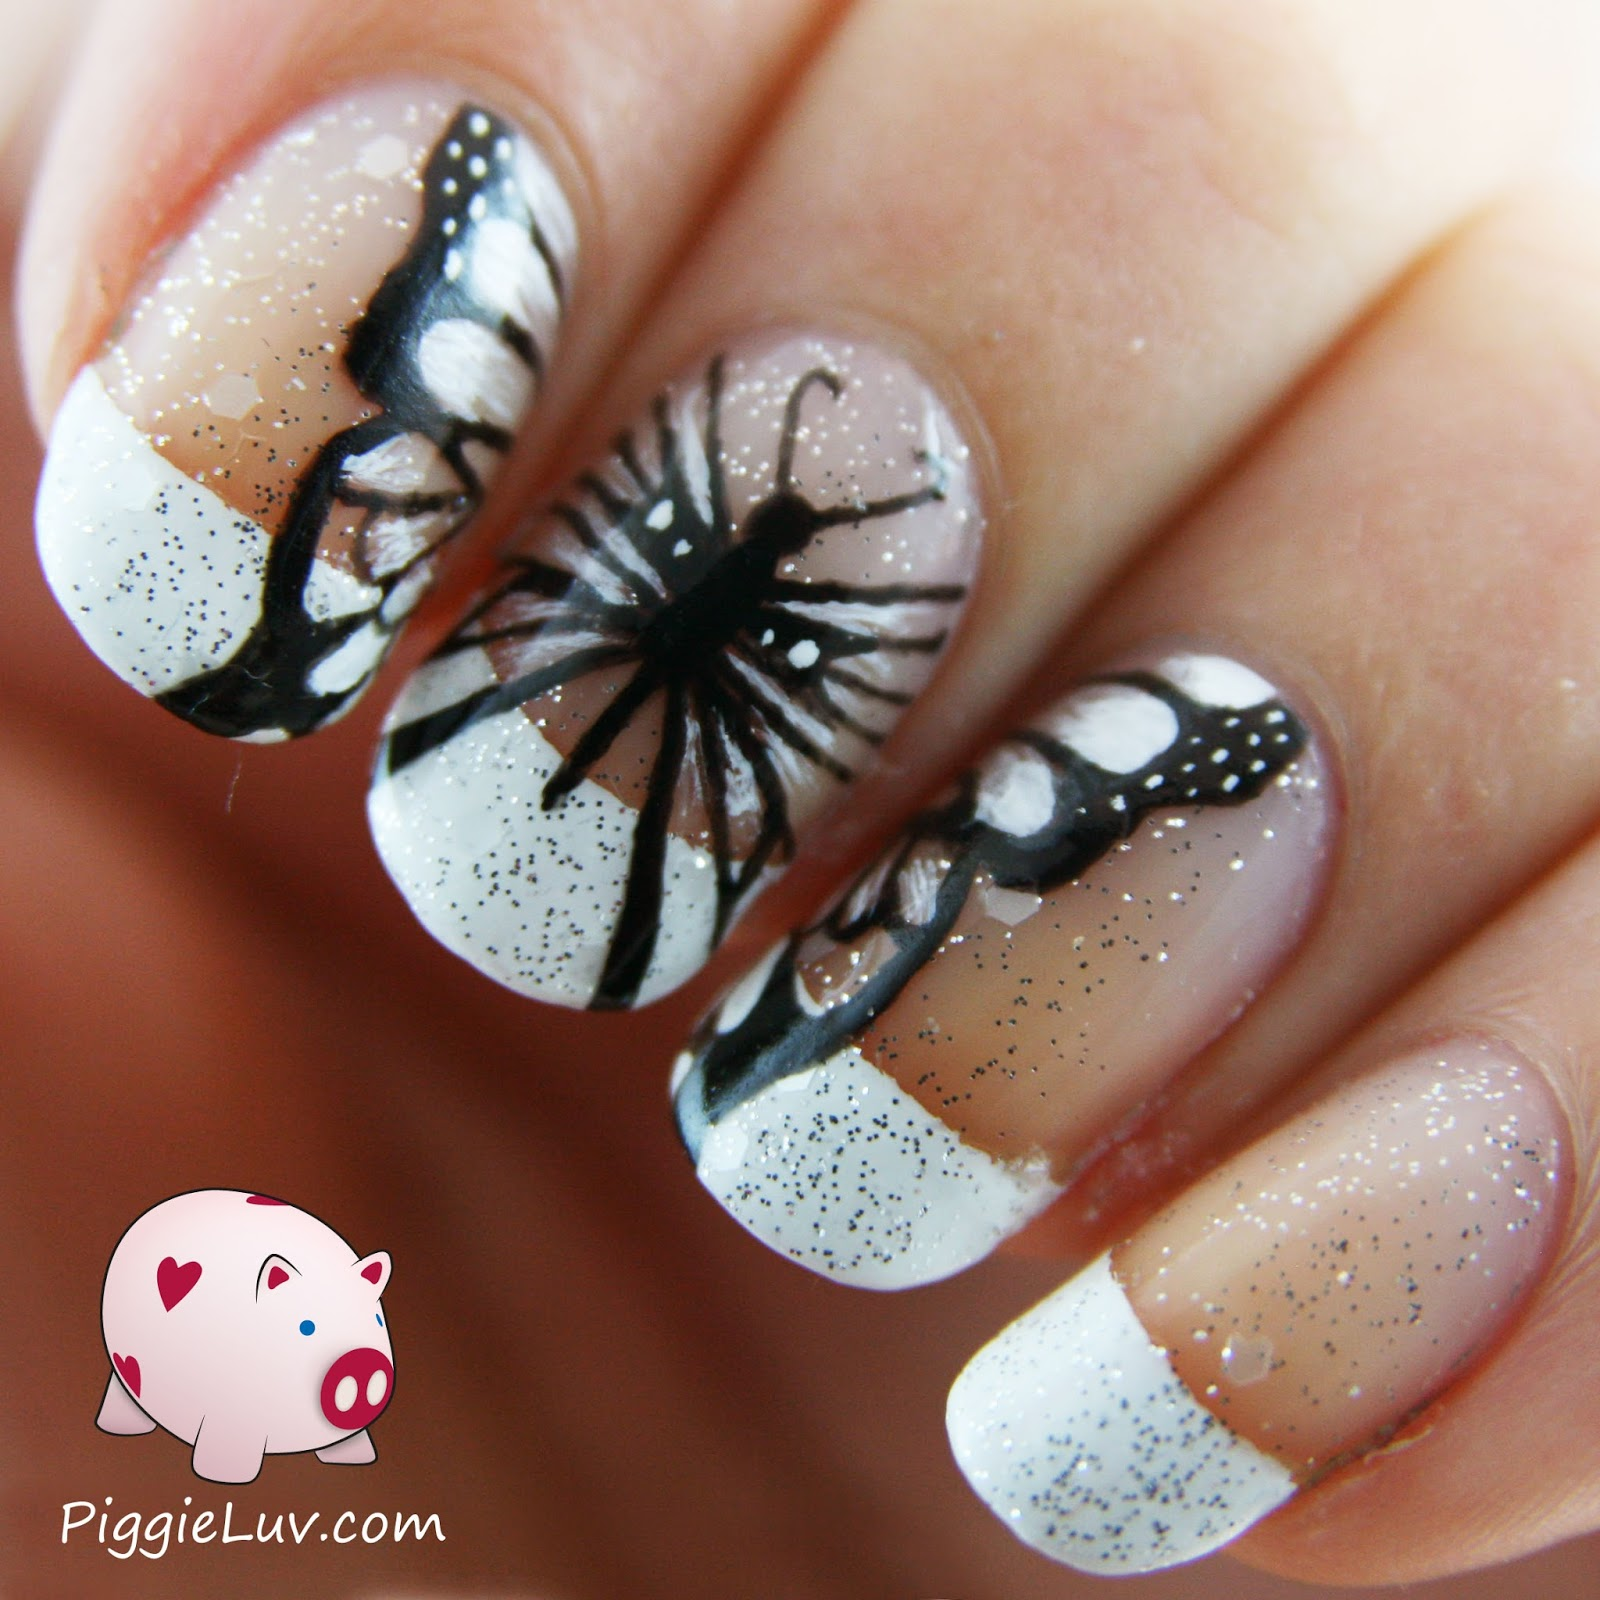 PiggieLuv: Hand painted black & white butterfly